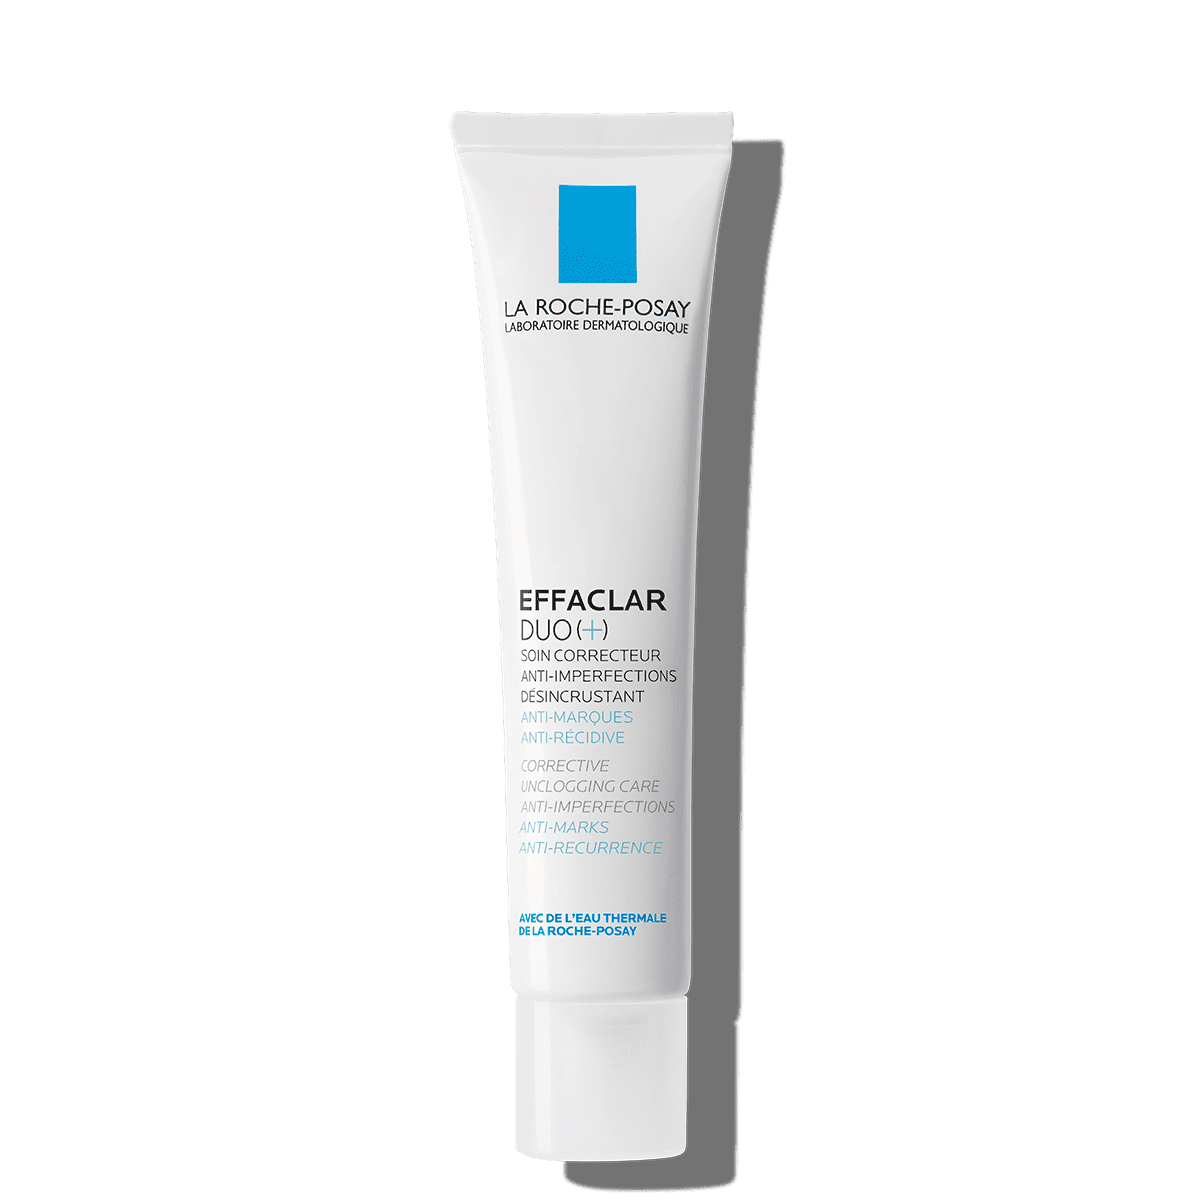 Effaclar Duo+ 40ml Corrective Anti Imperfections Marks Recurrence